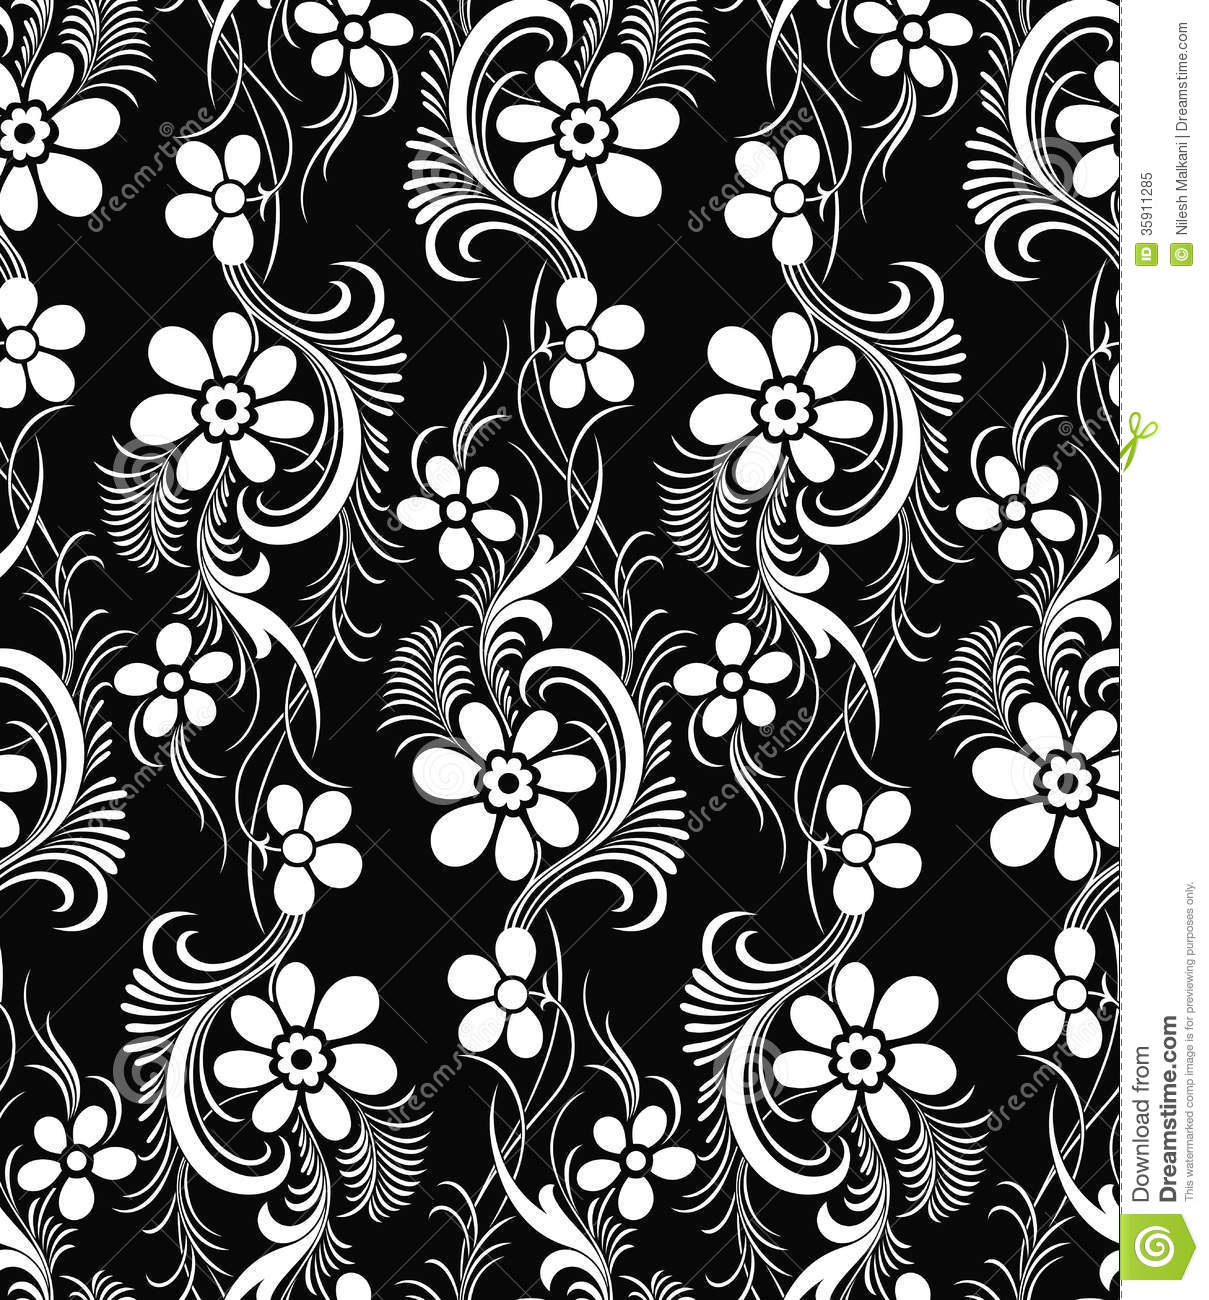 Seamless Vector Damask Wallpaper Royalty Free Stock Photo - Image ...